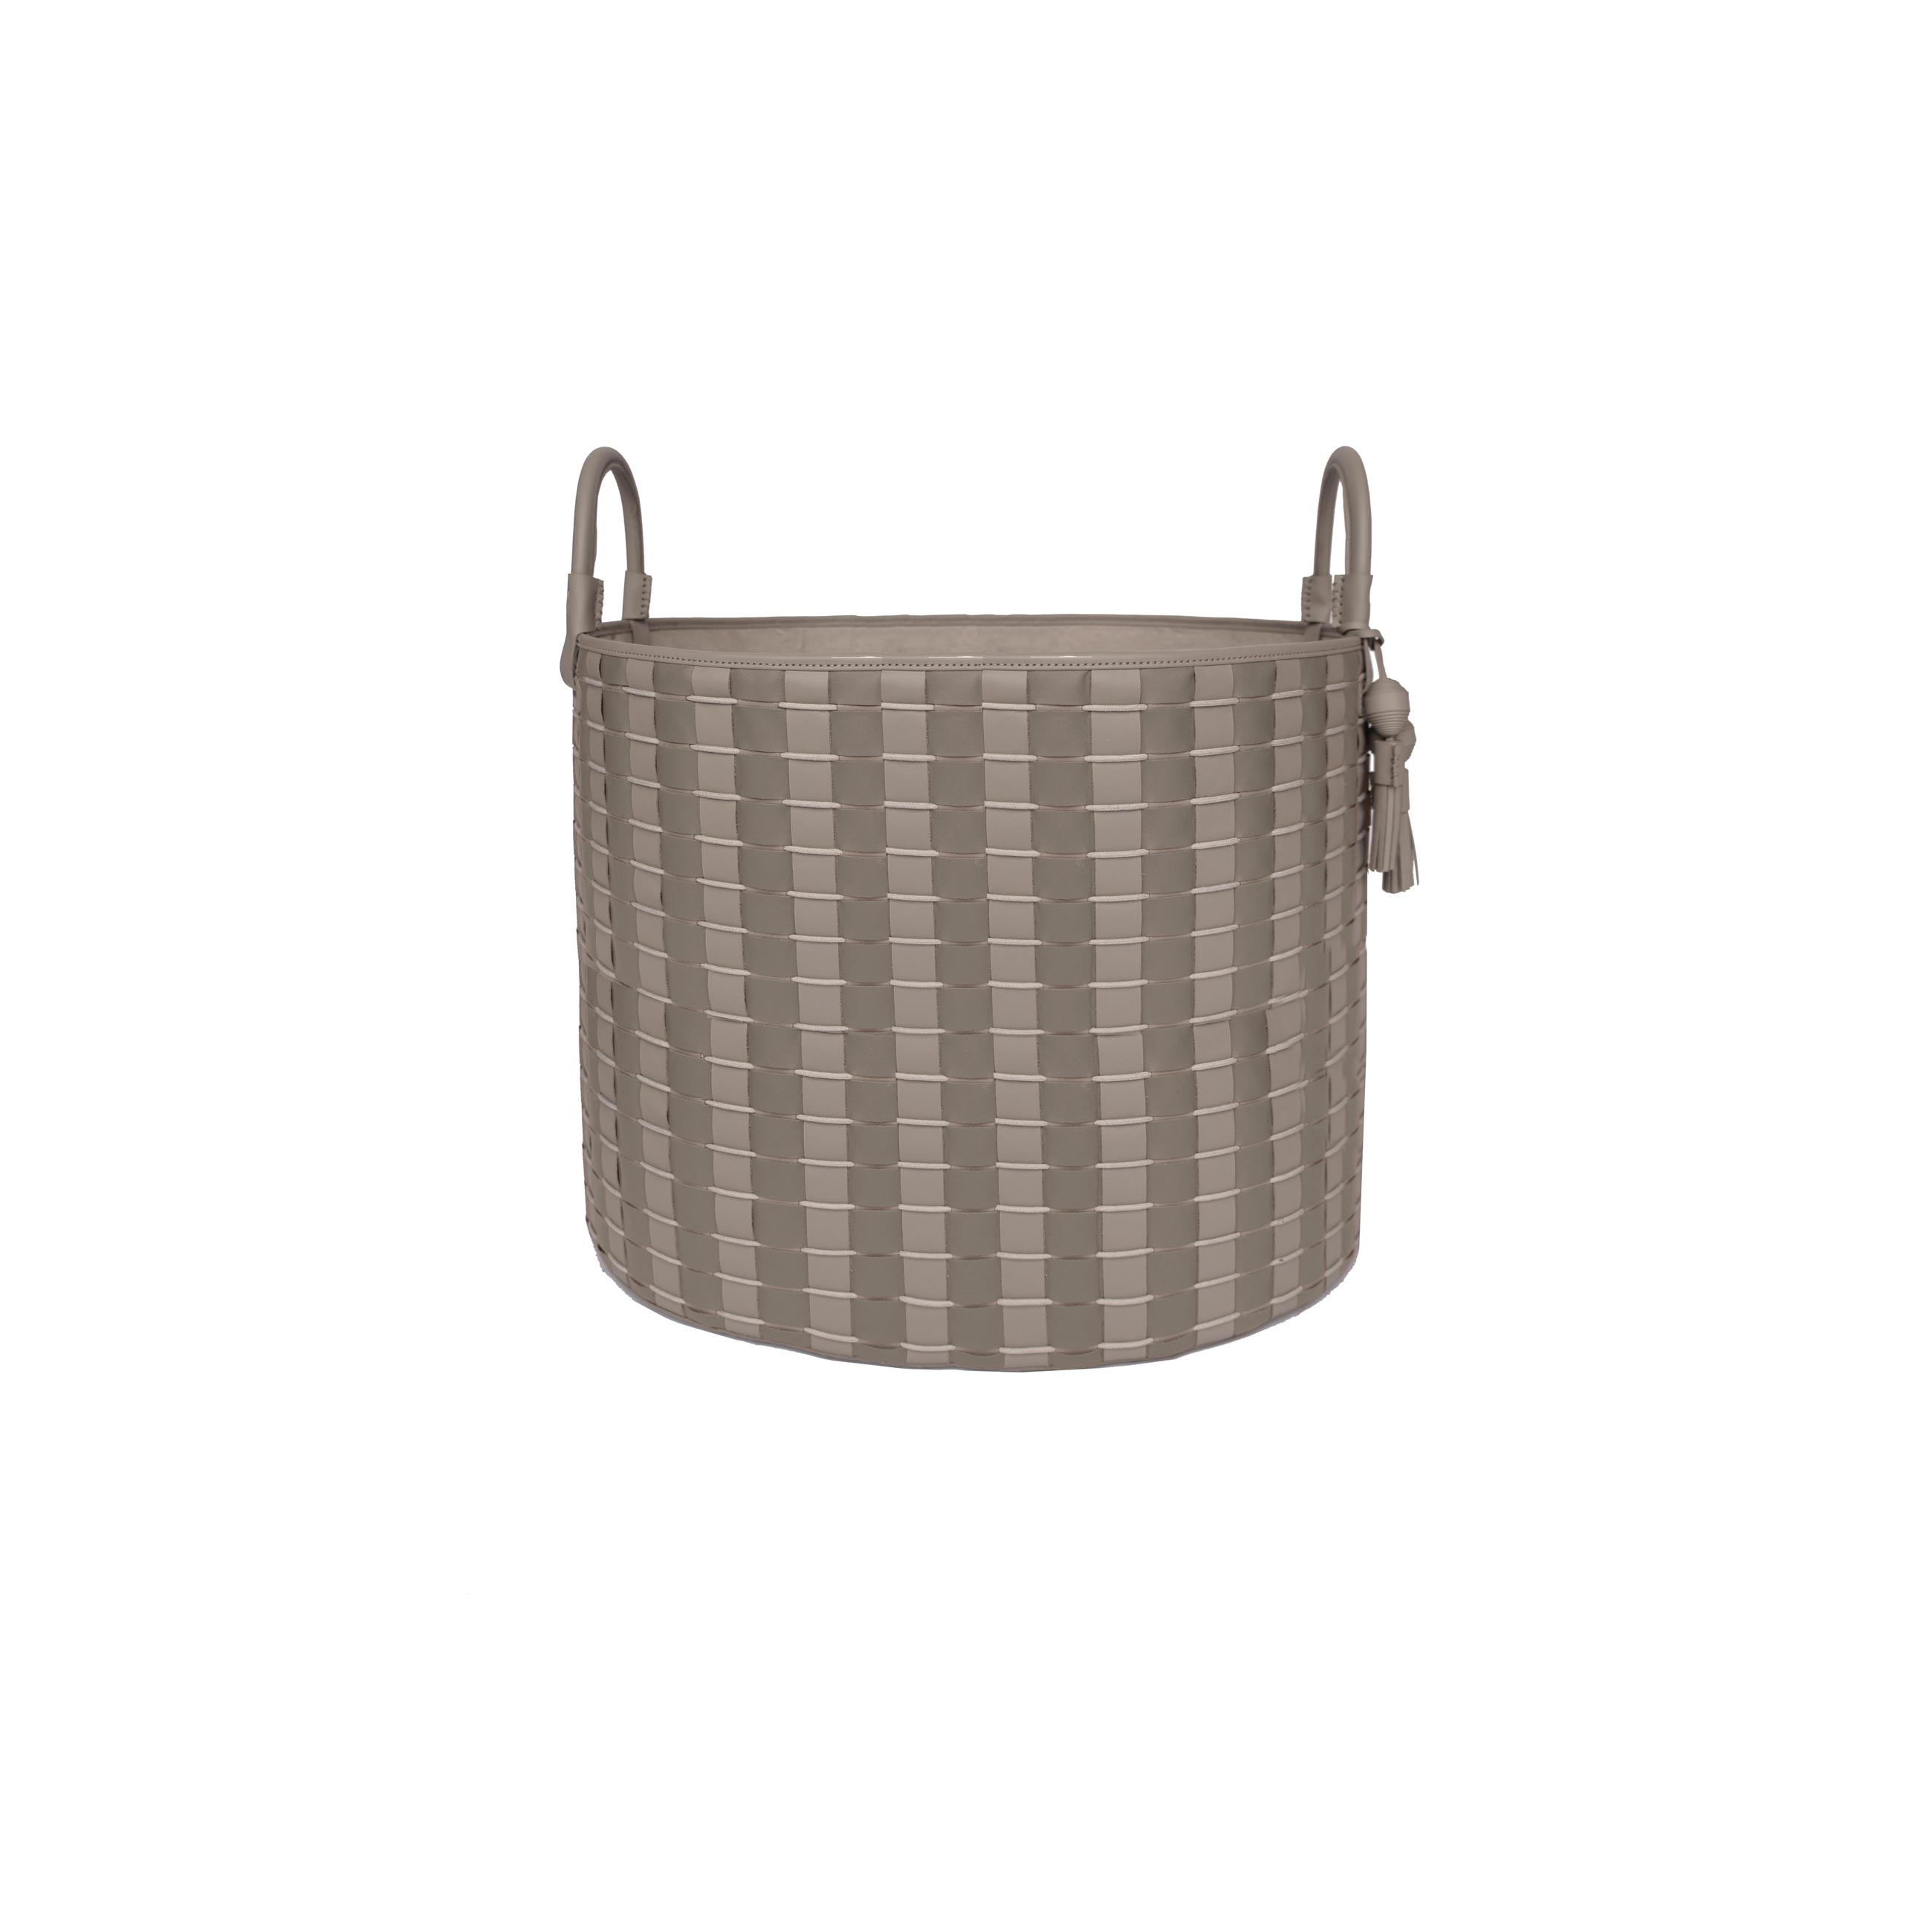 Camboja Paraty Woven Leather Basket - <p>The Camboja Paraty Woven Leather Basket is designed to complement an ambient with natural and sophisticated feeling, ideal when placed next your sofa or bed, perfect for magazines and throws storage. Our woven leather pieces, are handmade and manufactured in Brazil using an exclusive treated leather that brings the soft feel and touch to every single piece. Elisa Atheniense Home Camboja Paraty Baskets have a delicate tassel attached. Bespoke sizes are also available under project request as well as colours.</p> <p>The baskets are available in three sizes.<br />Bespoke sizes are also available under project request as well as colours.</p>  | Matter of Stuff